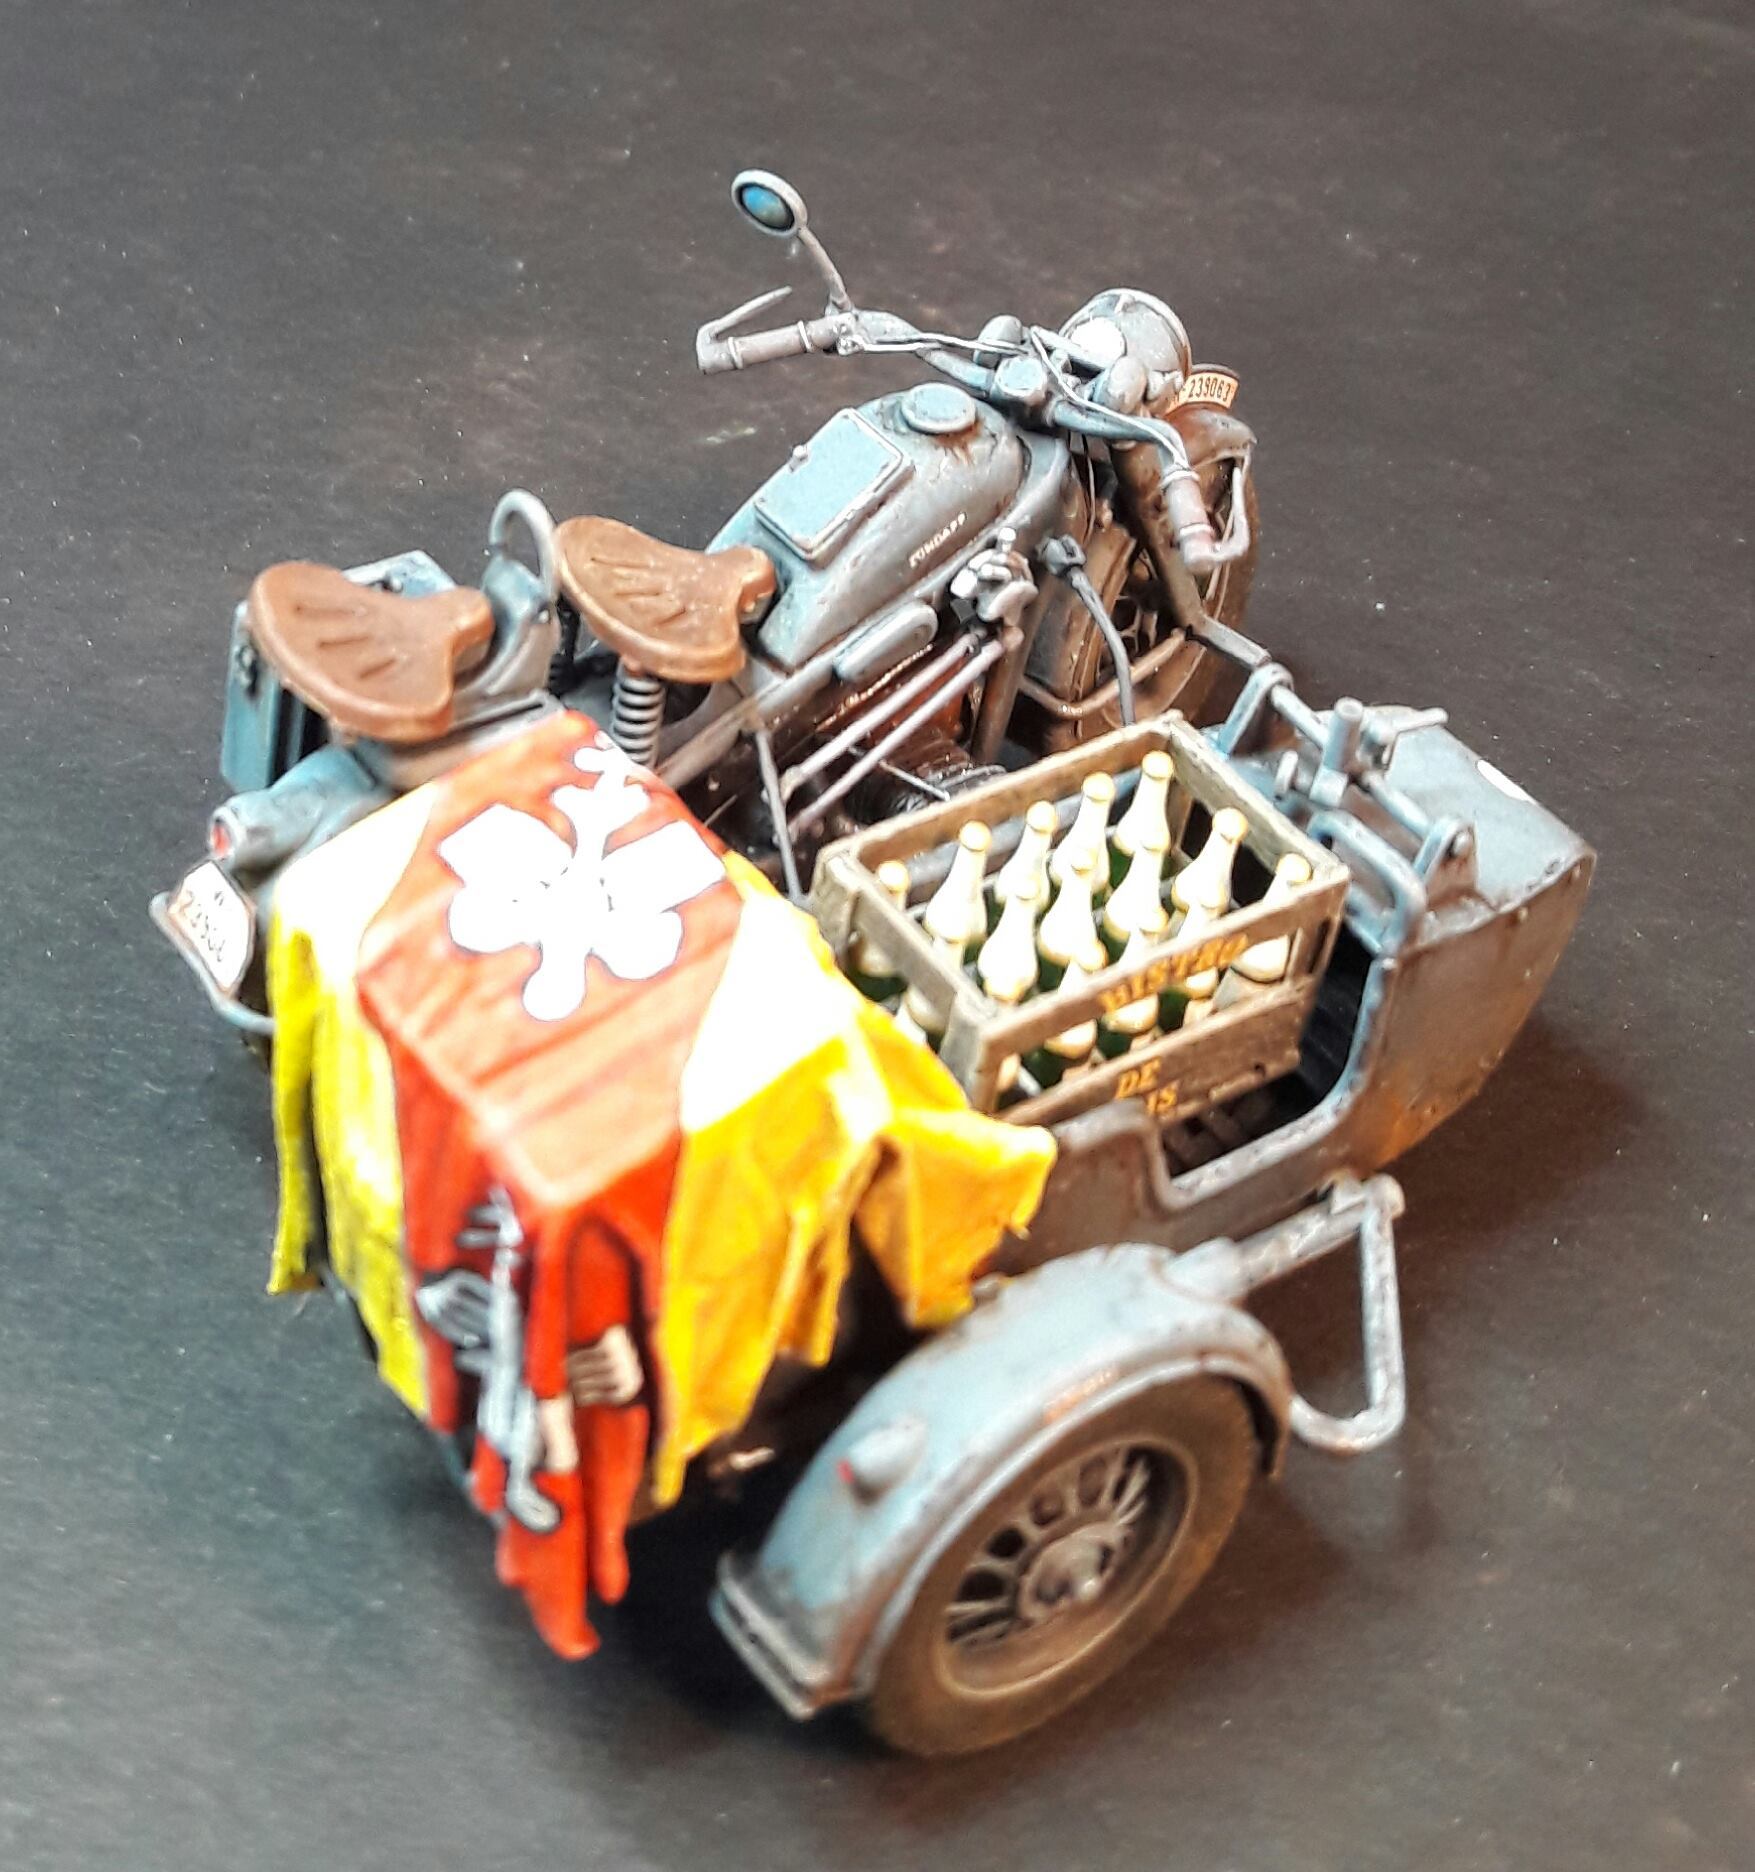 Zündapp KS750 - Sidecar - Great Wall Hobby + figurines Alpine - 1/35 - Page 5 32274420048916102117868054801341897836405o